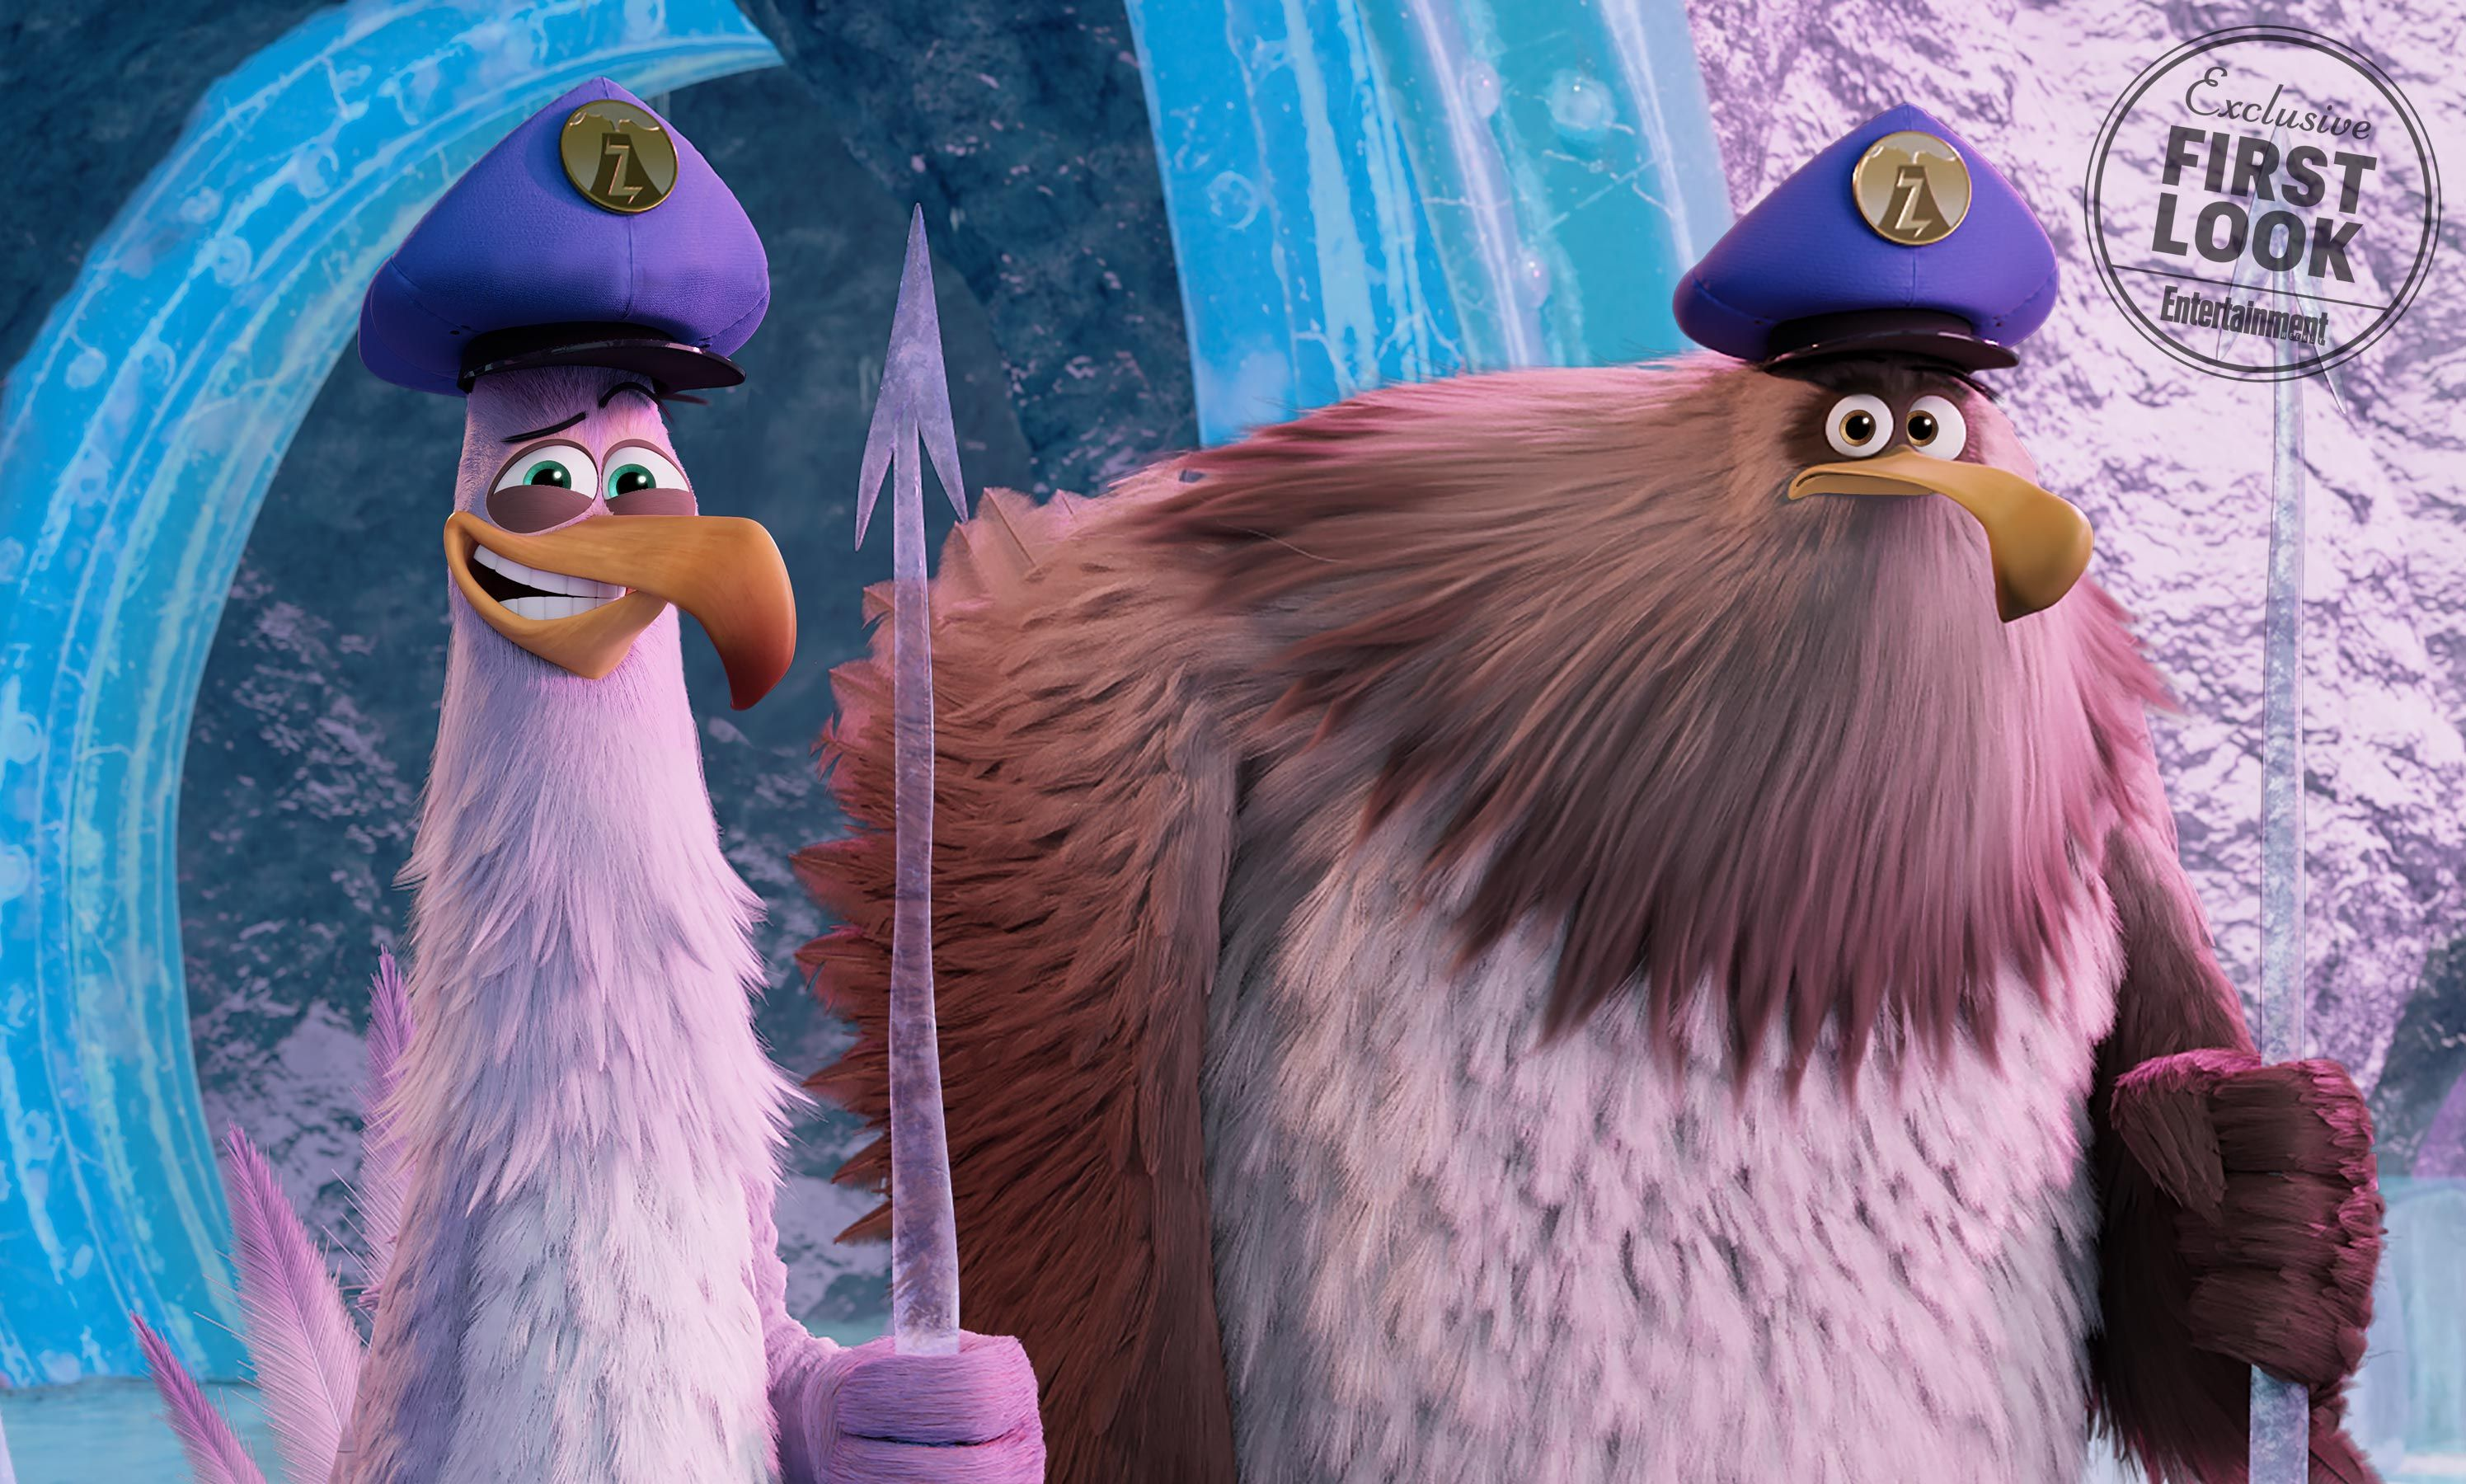 Exclusive: 'The Angry Birds Movie 2' trailer unites pigs and birds against  a new enemy | Angry birds movie, Angry birds, Angry birds 2 movie